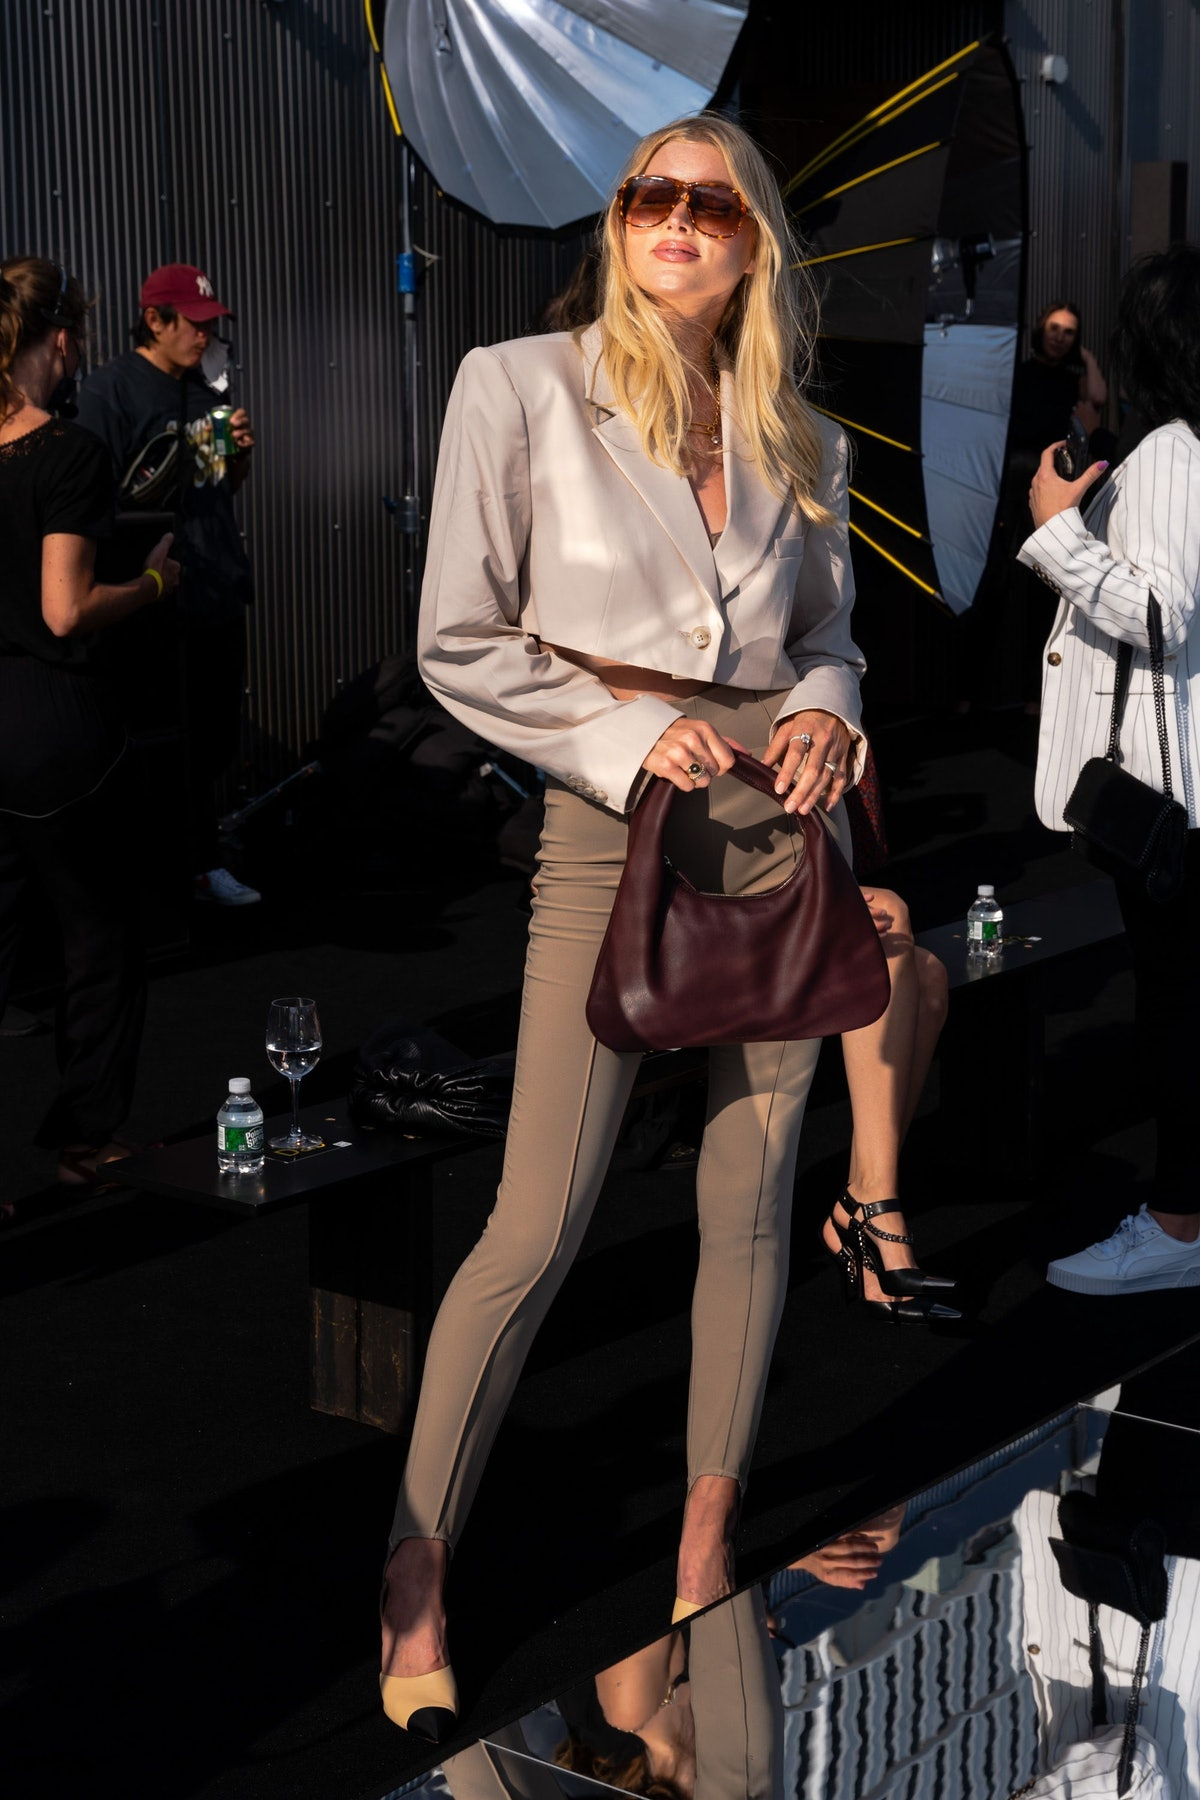 Elsa Hosk attends the DUNDAS x REVOLVE NYFW Runway Show at Casa Cipriani in New York City in Septemb...